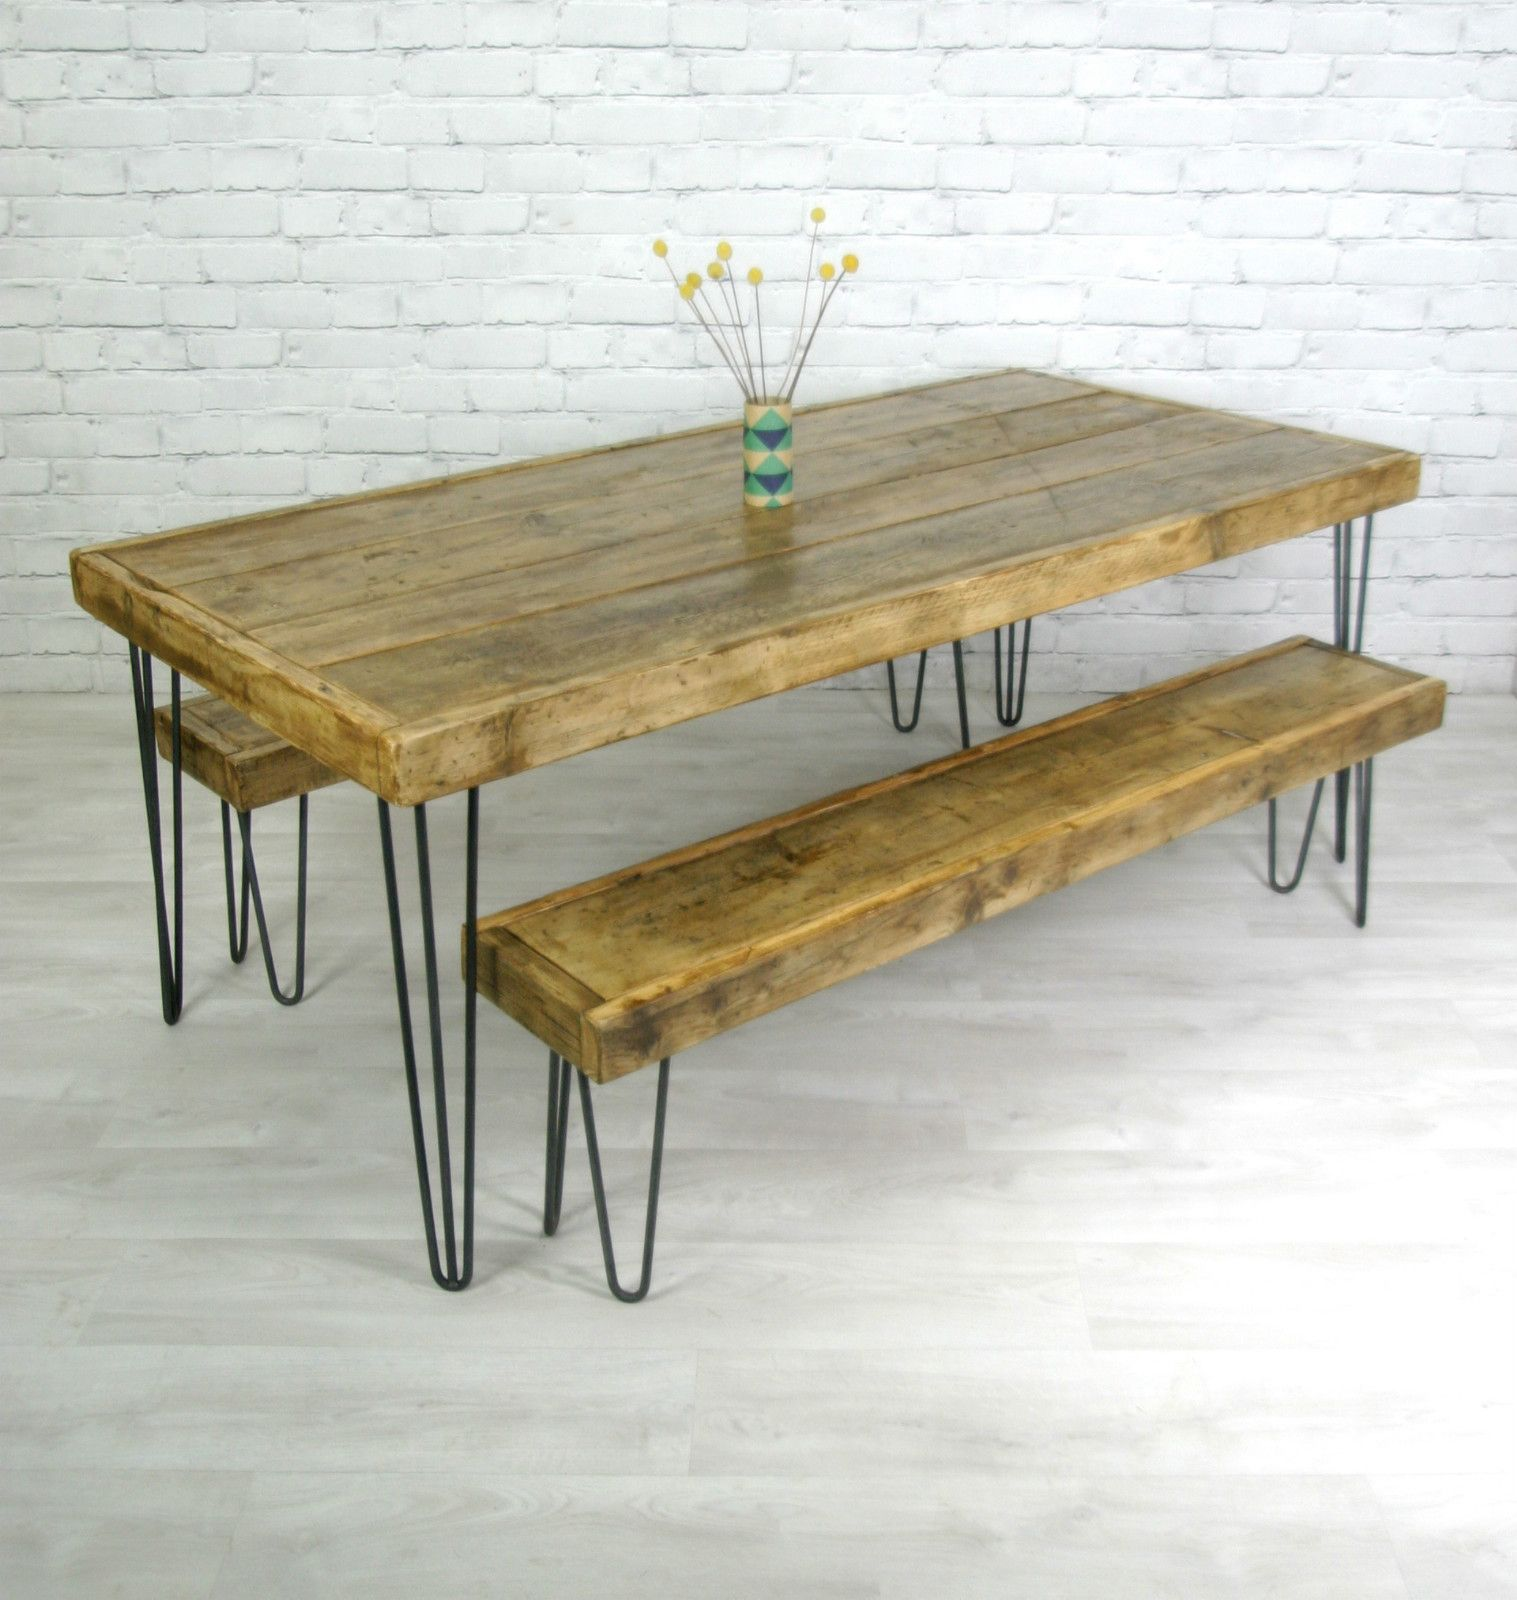 Details About HAIRPIN LEGS VINTAGE INDUSTRIAL RUSTIC MID